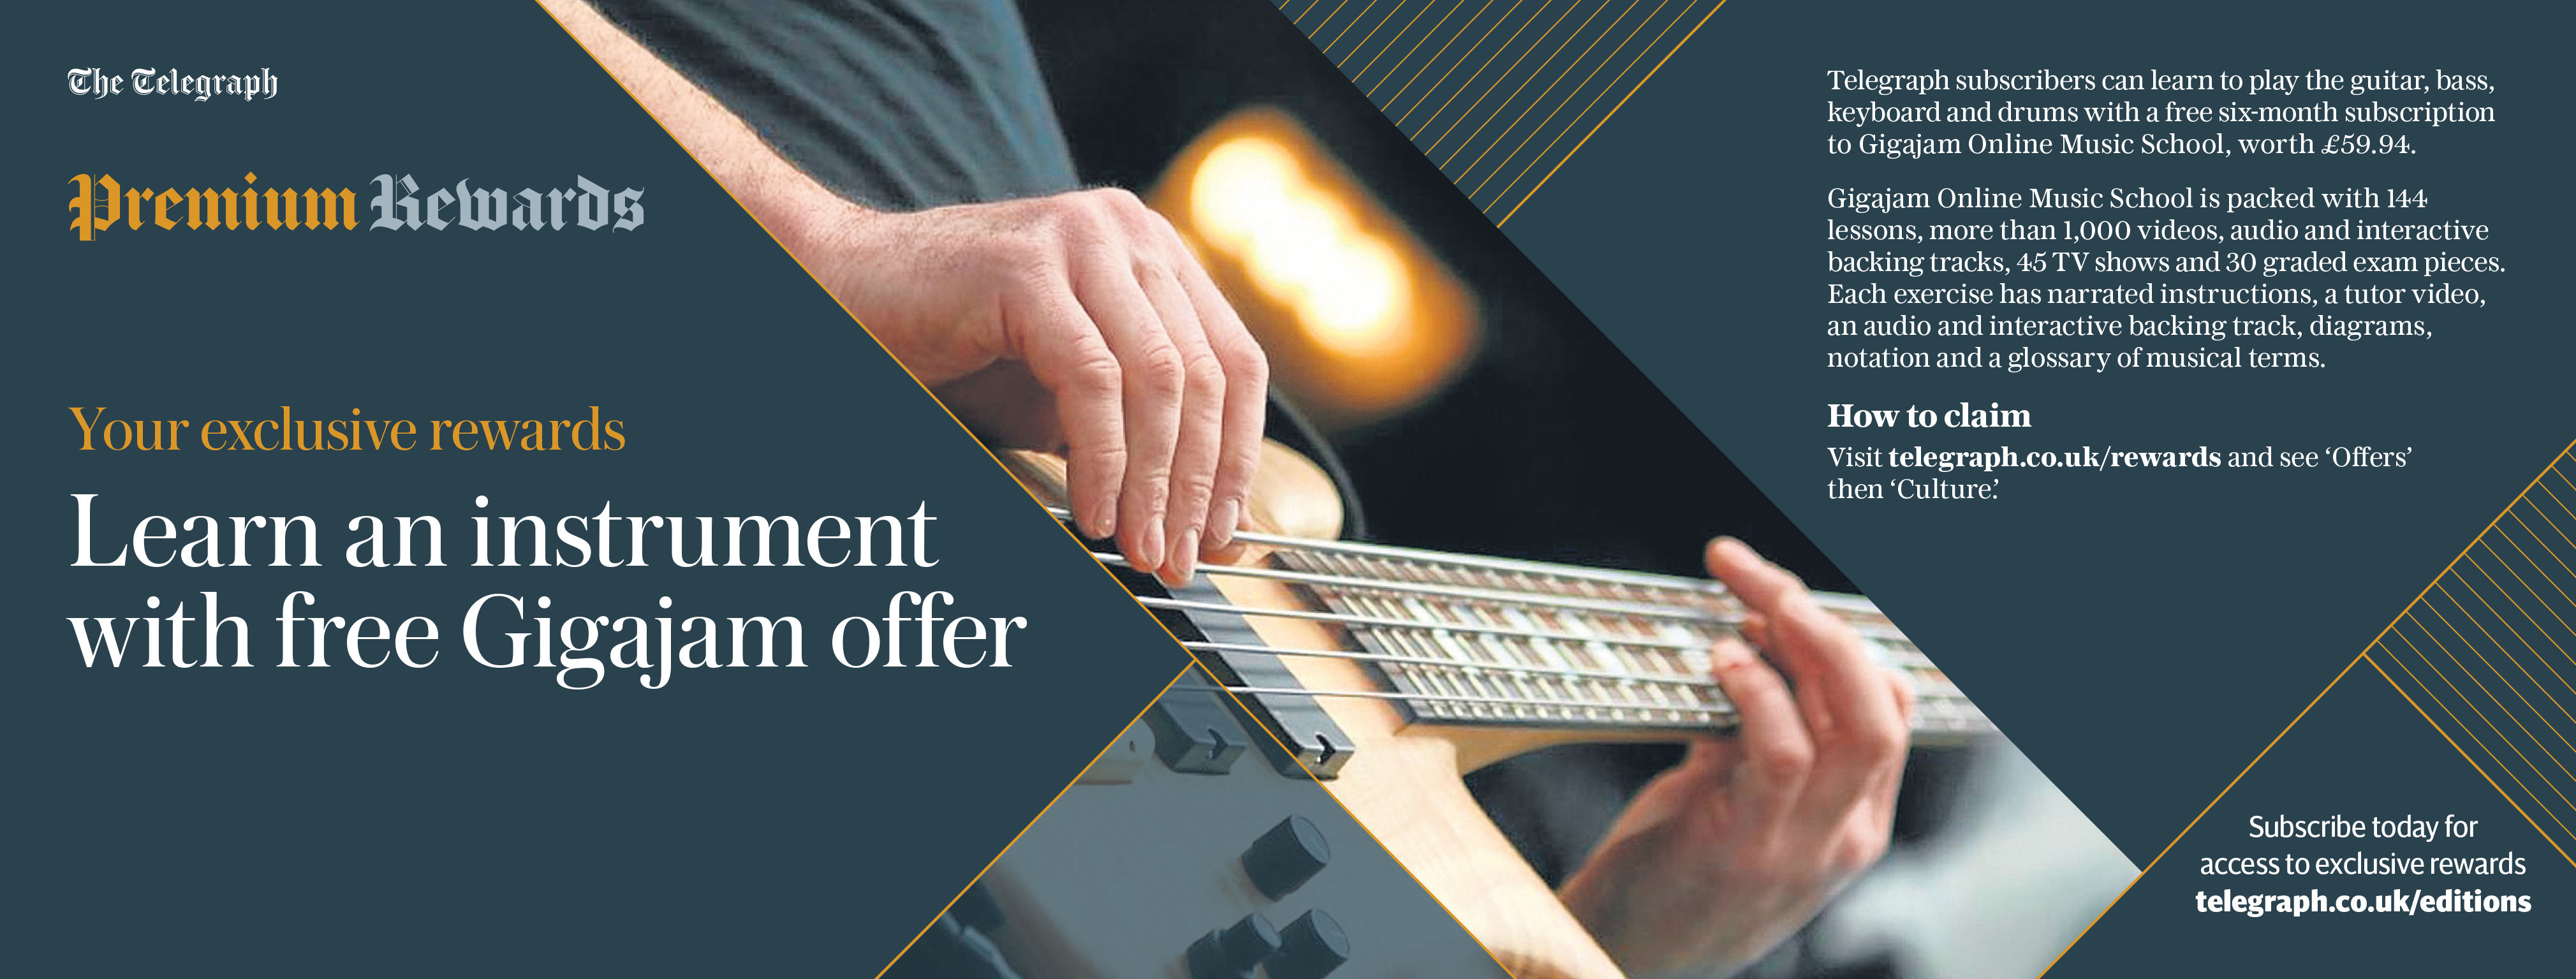 Telegraph Promotions - Learn an instrument with free Gigajam offer